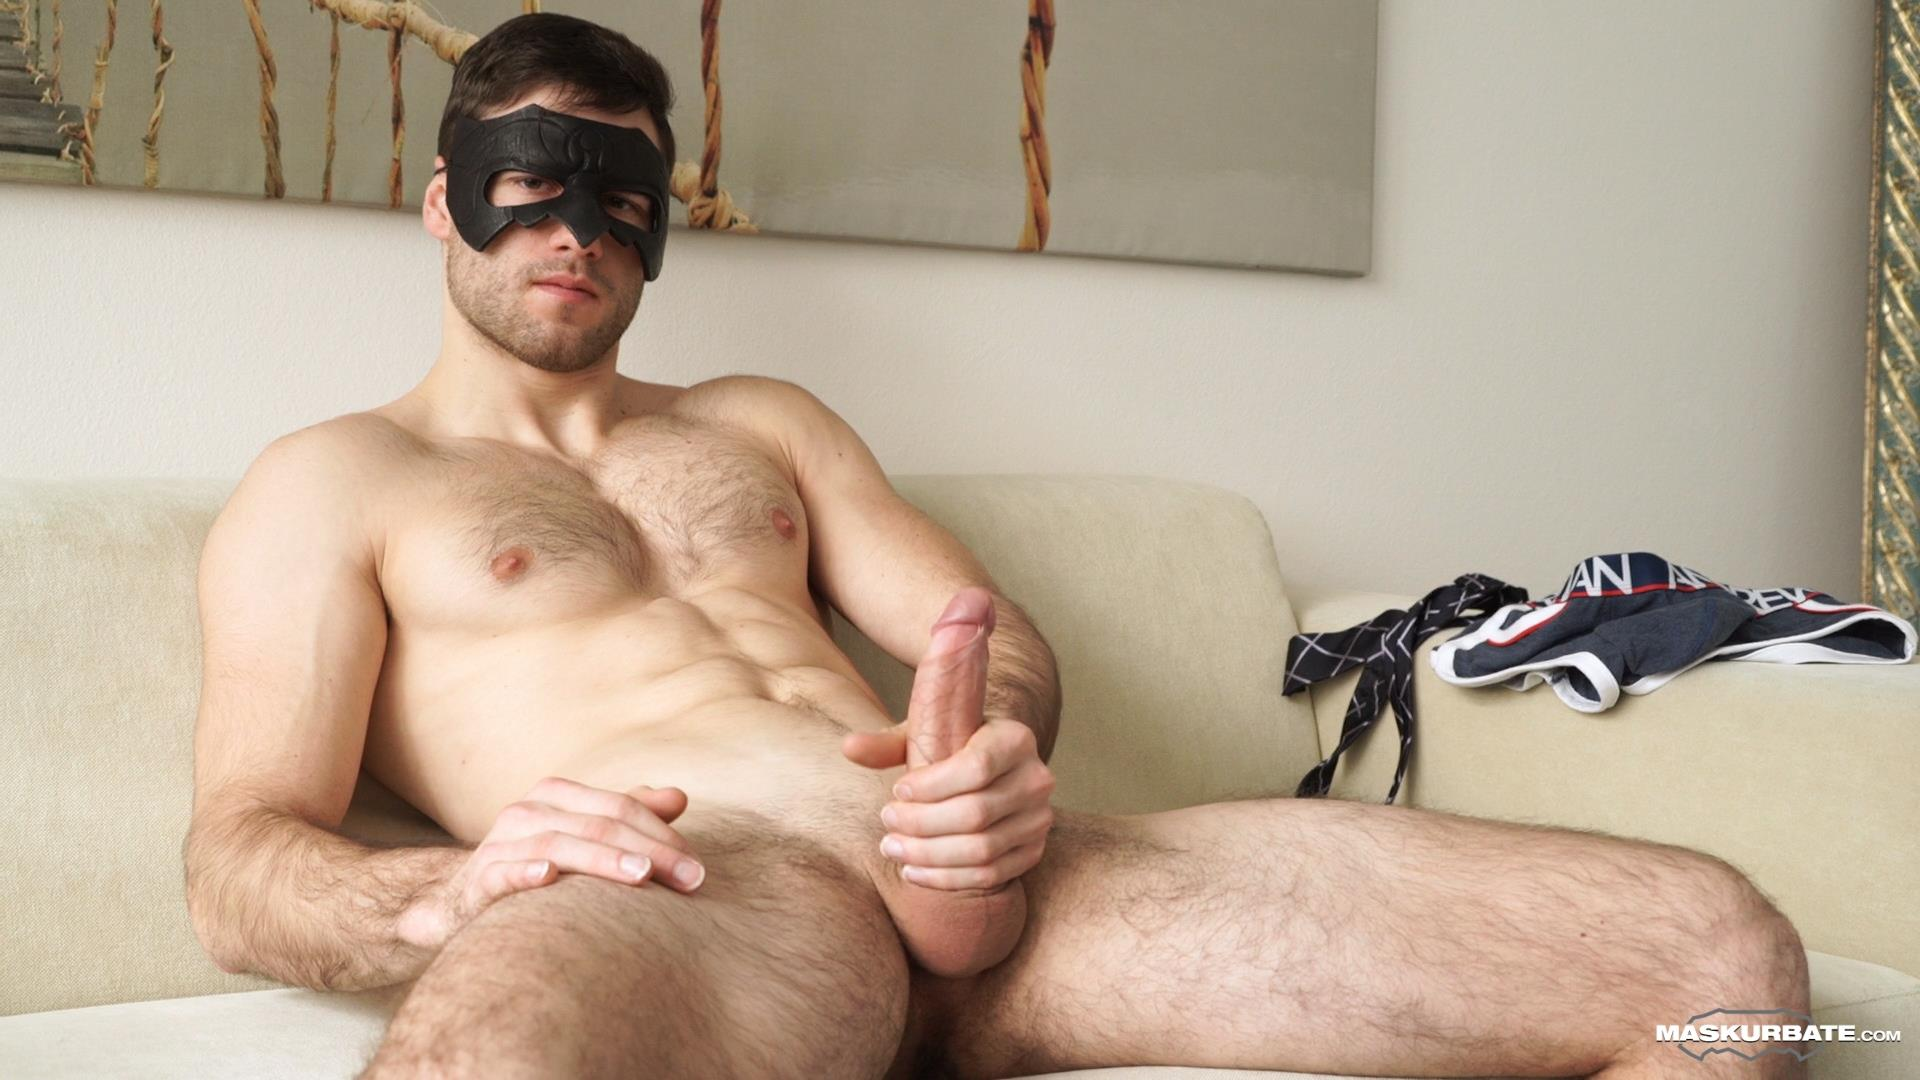 Maskurbate-Sam-Cuthan-Straight-Naked-Hairy-Muscle-Guy-Jerk-off-05 Straight Masked Hairy Muscle Hunk Strokes His Big Uncut Cock